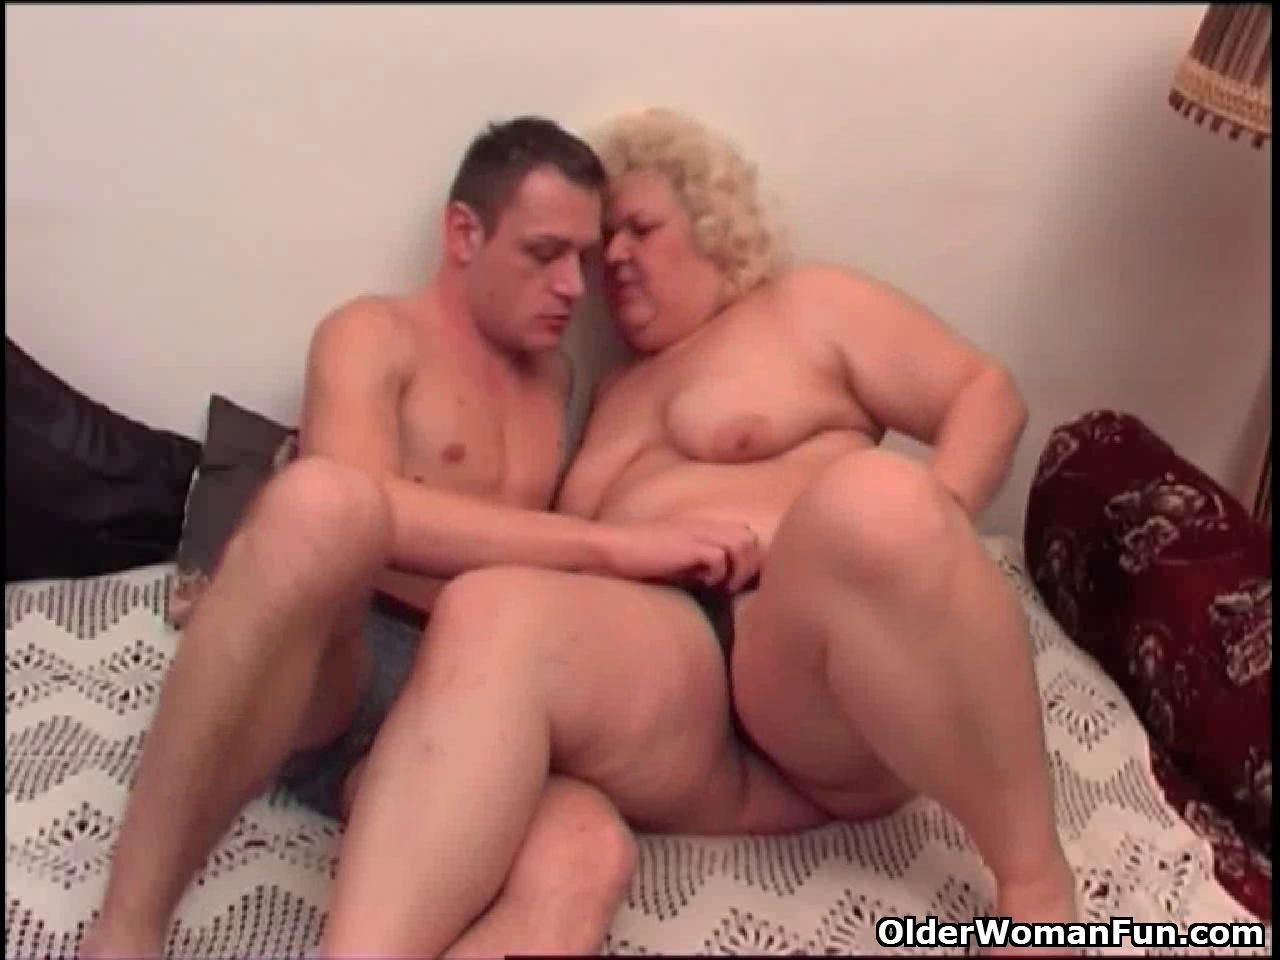 Obese granny likes to give and receive oral job enjoyment Www pc flash games download com